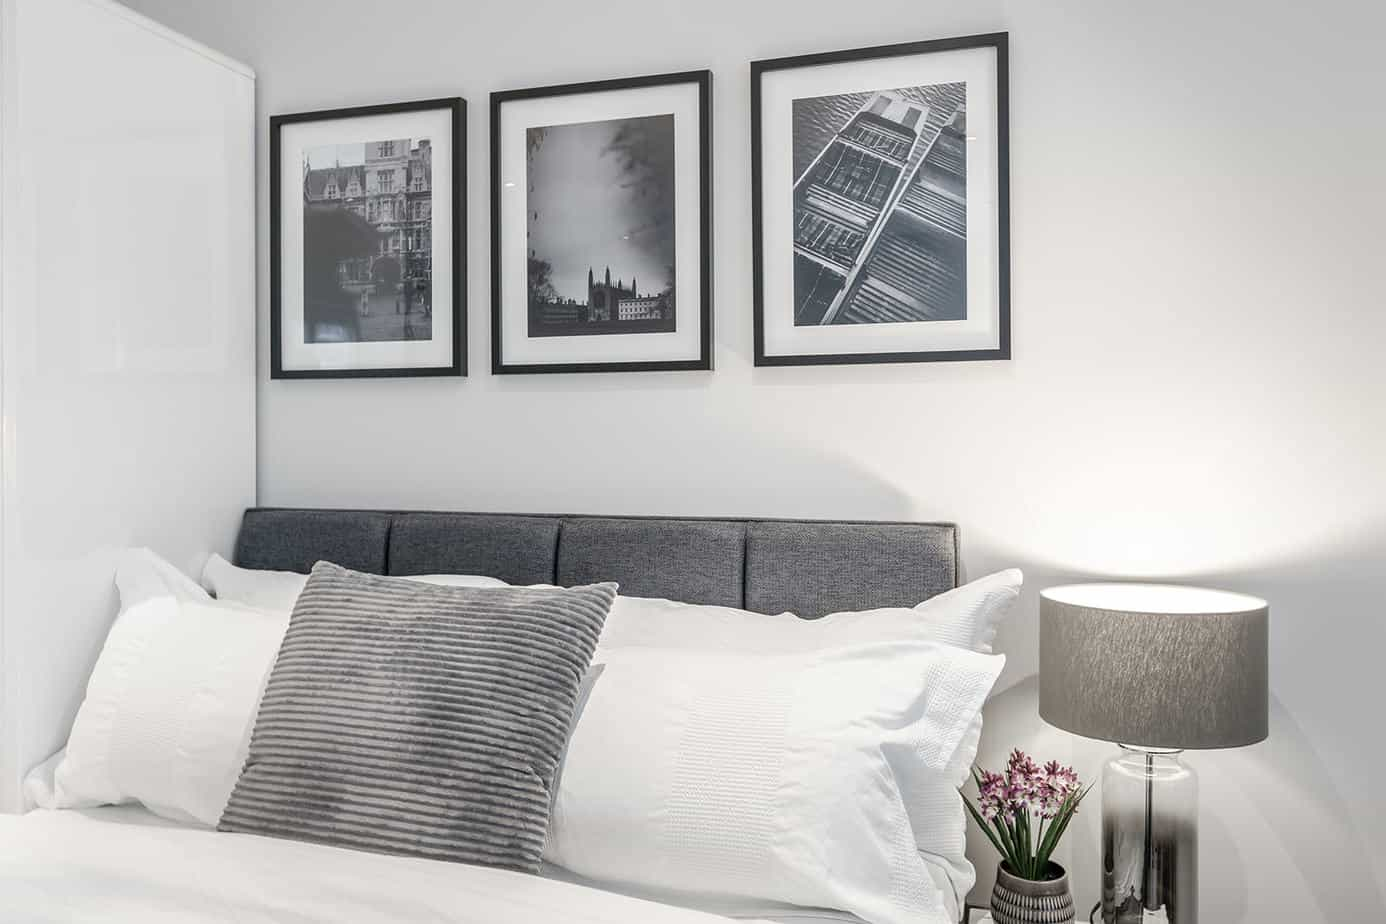 Tailored Stays Victoria Road Serviced Apartment beds come with Egyptian cotton bedding and duck down duvets.